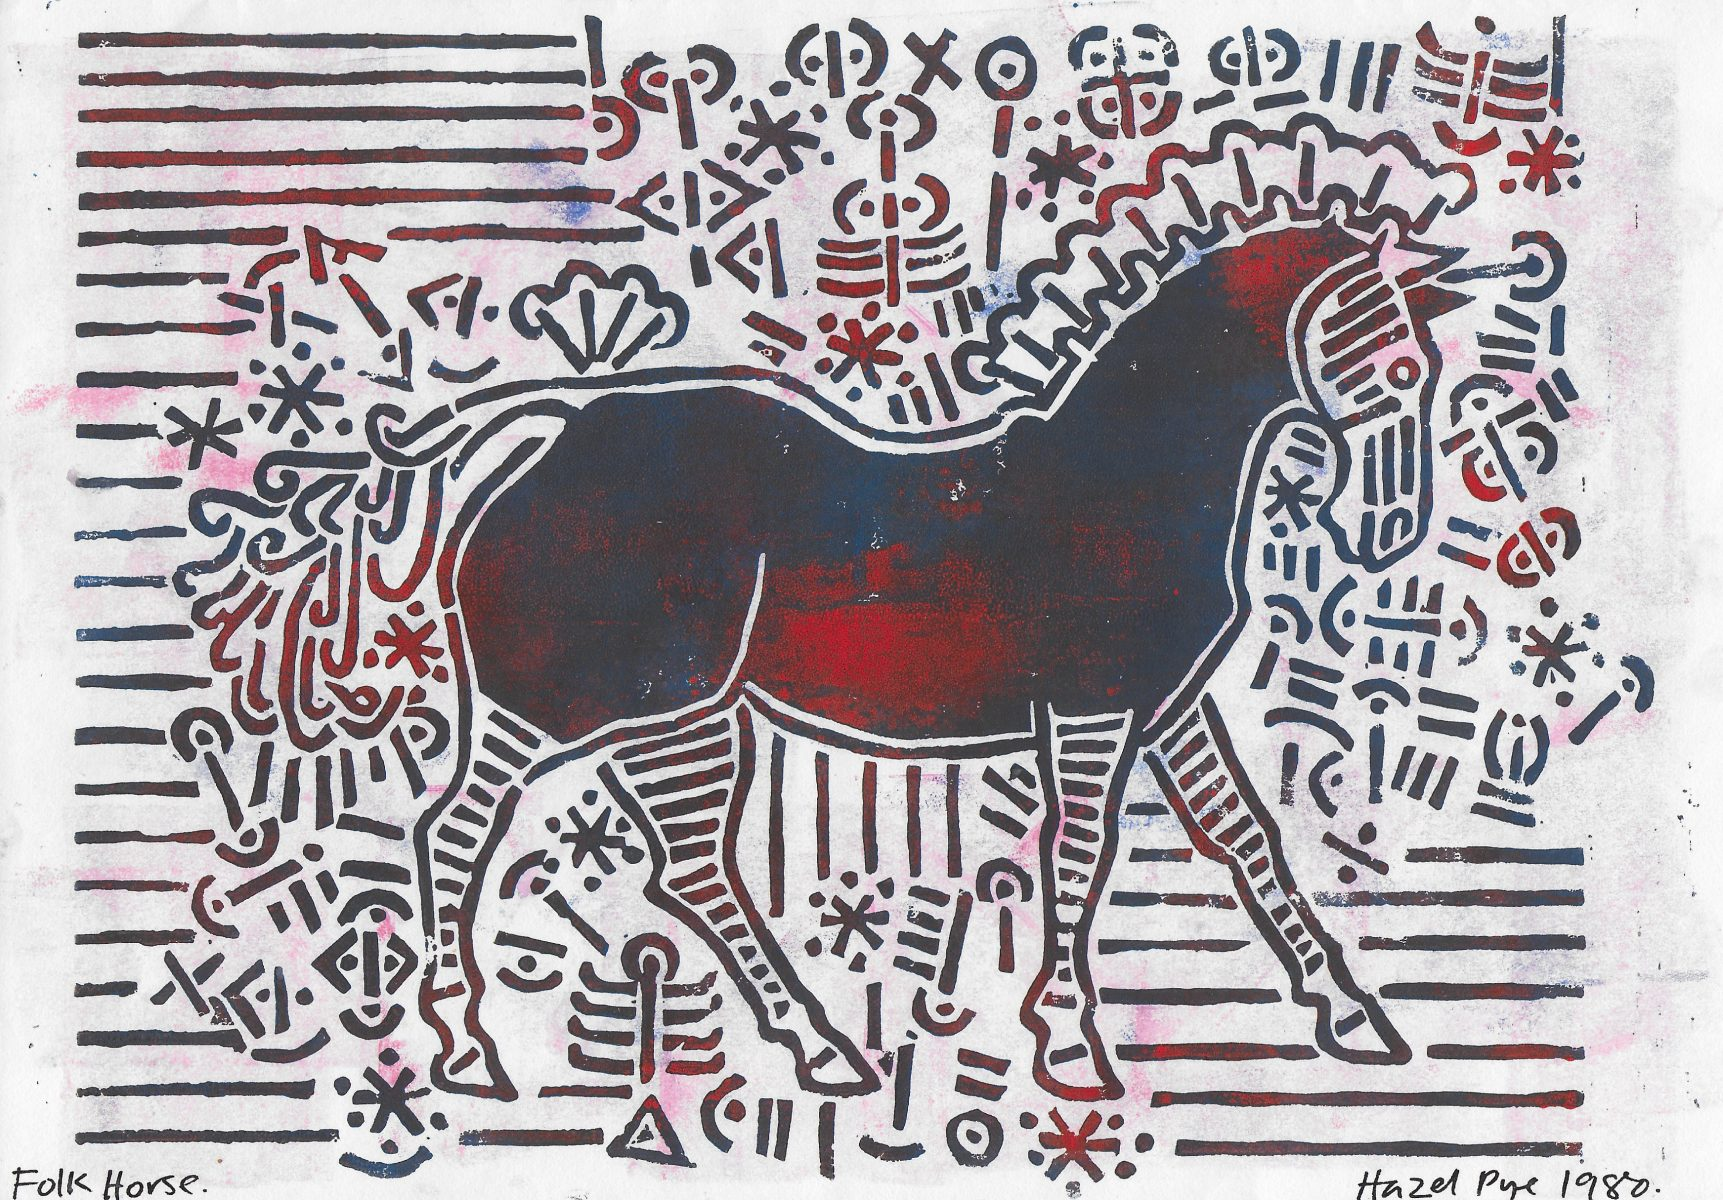 Folk Horse. Blue and Red